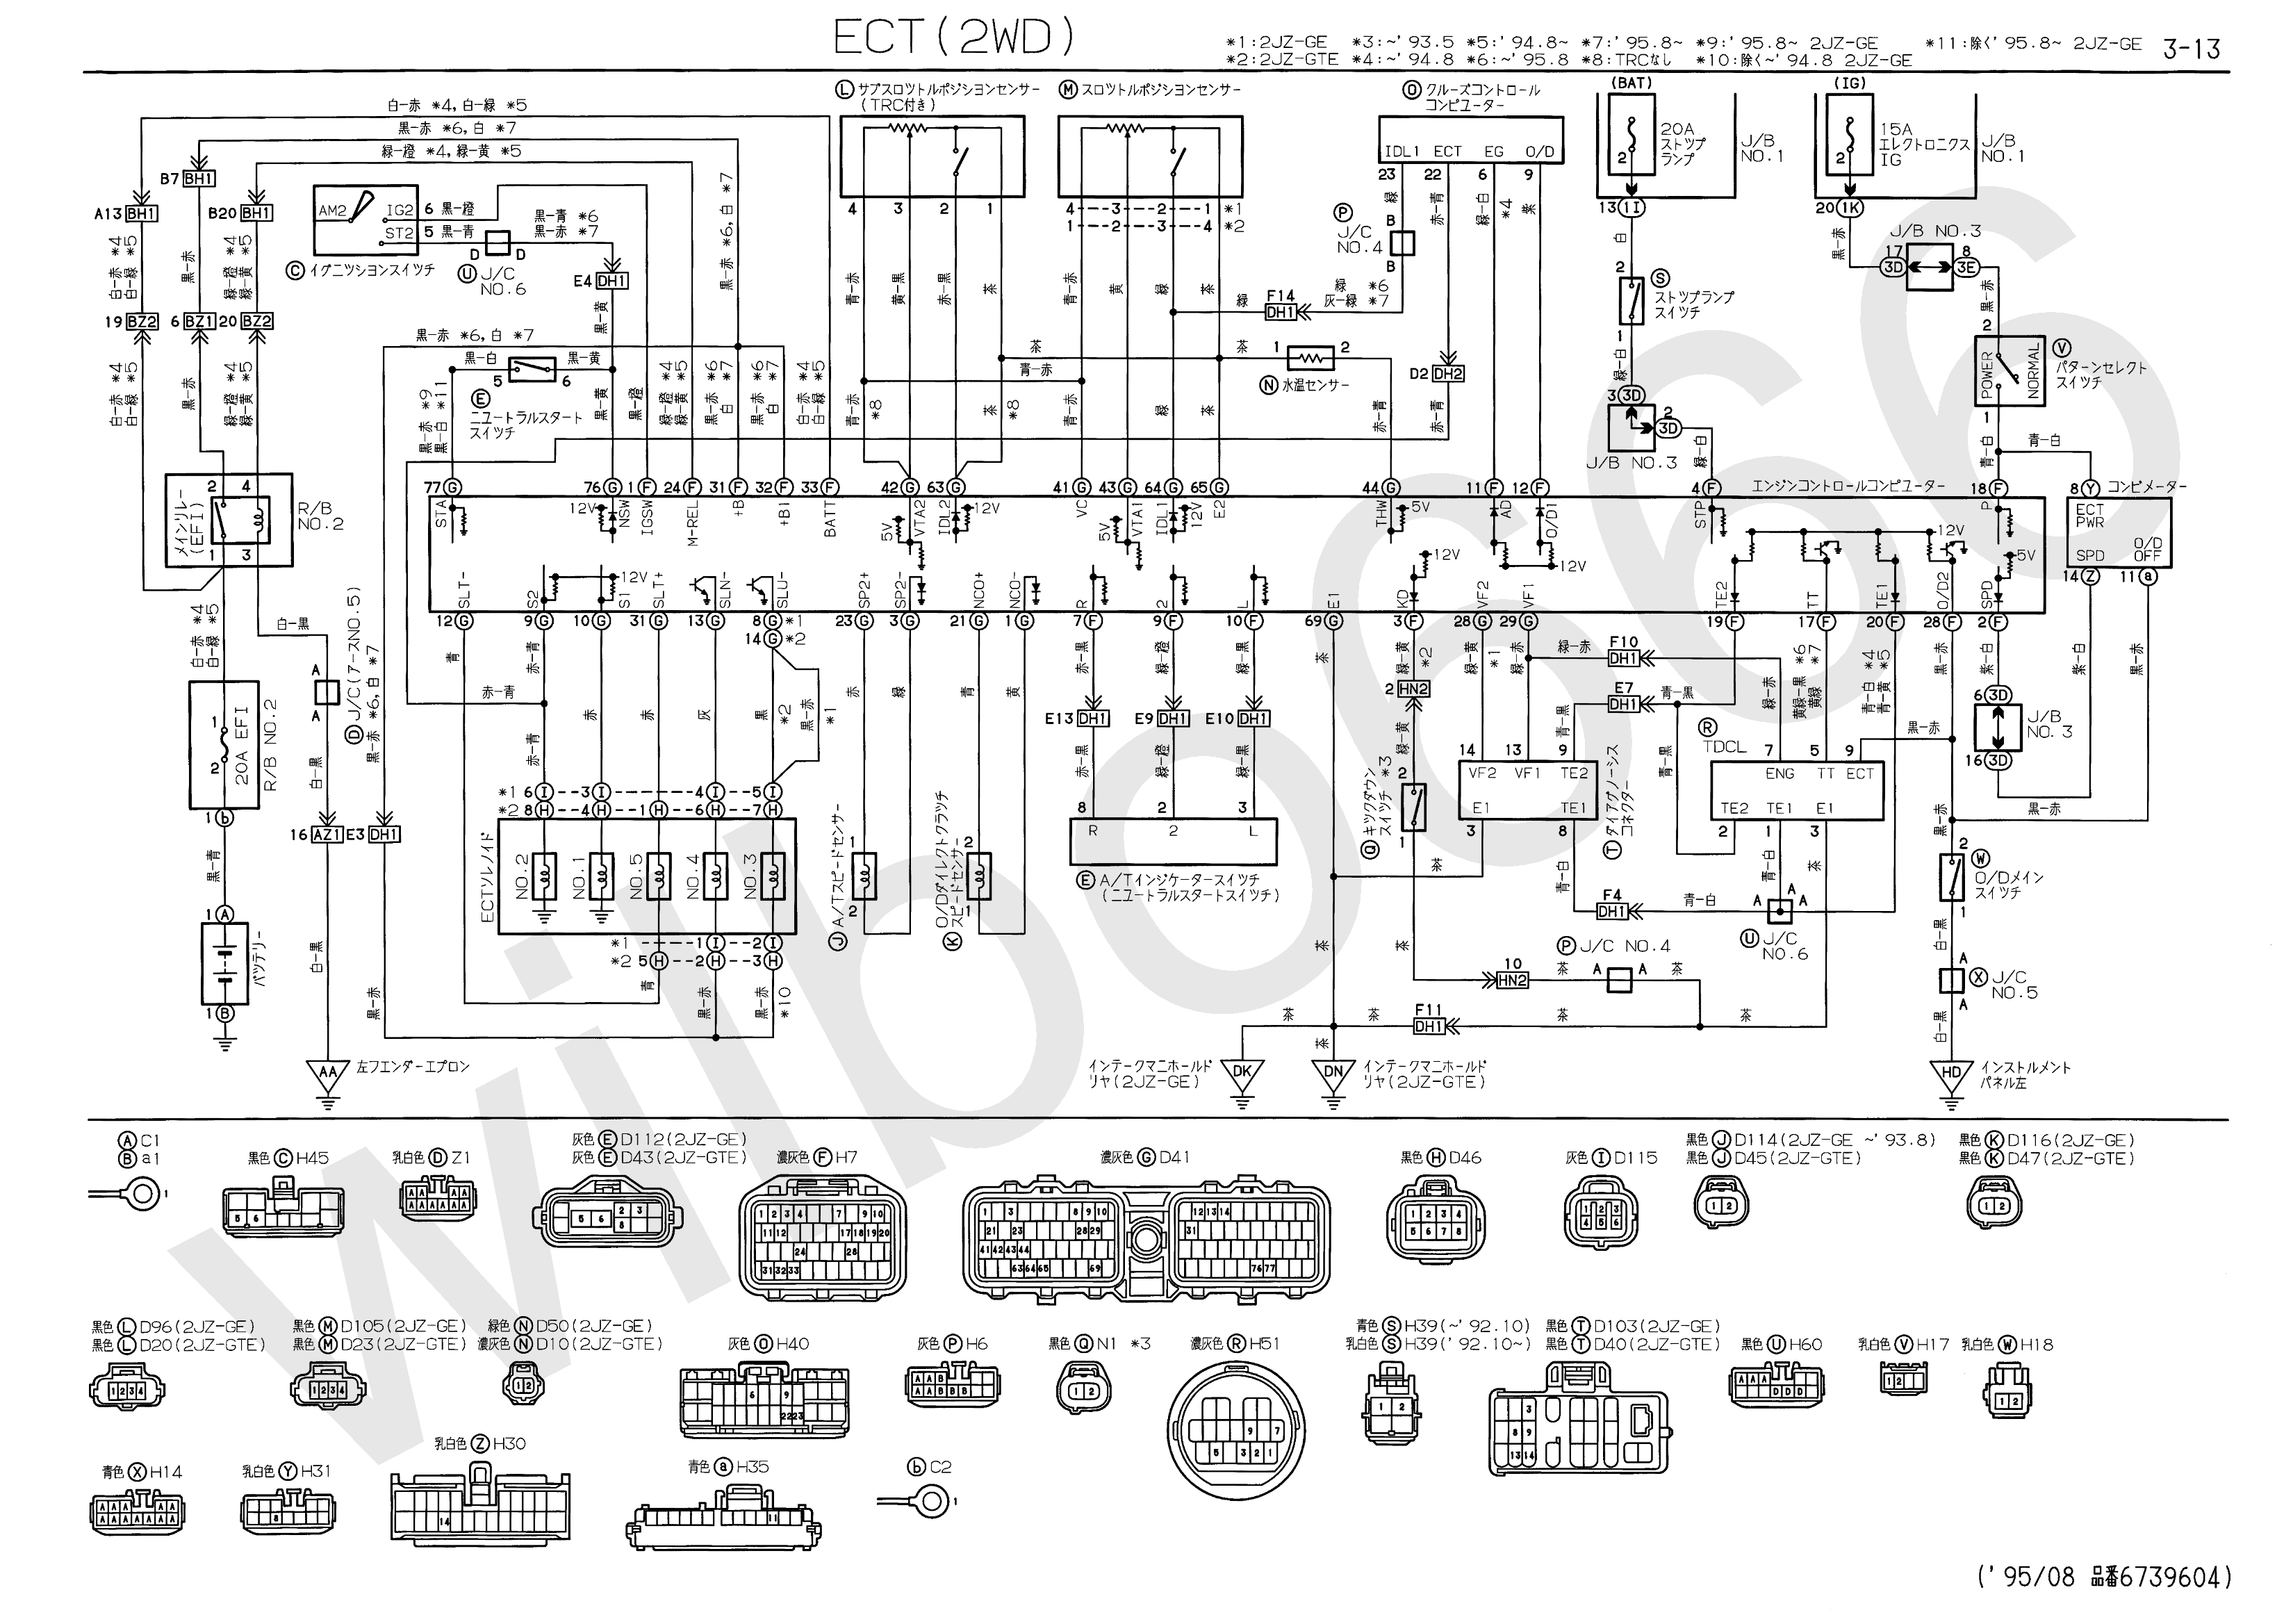 JZS14%23%2C+UZS14%23+Electrical+Wiring+Diagram+6739604+3 13 wilbo666 2jz gte jzs147 aristo engine wiring 2jz ge wiring diagram pdf at edmiracle.co